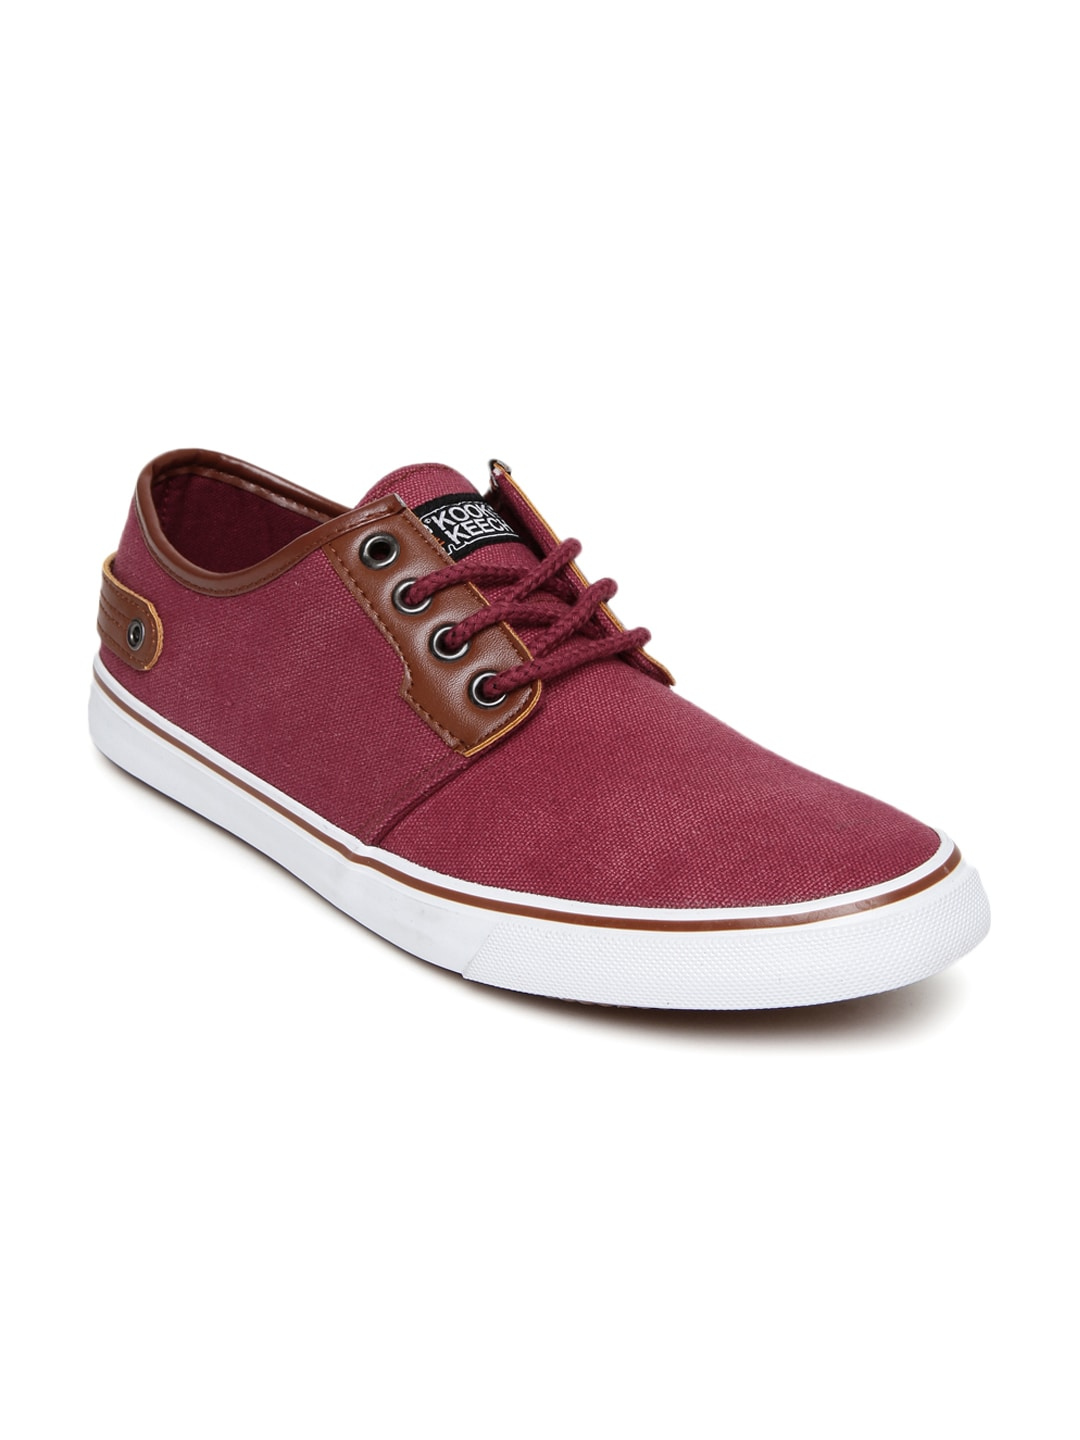 Buy Roadster Men Maroon Canvas Shoes - Casual Shoes for Men 1230411 ... 964521f12